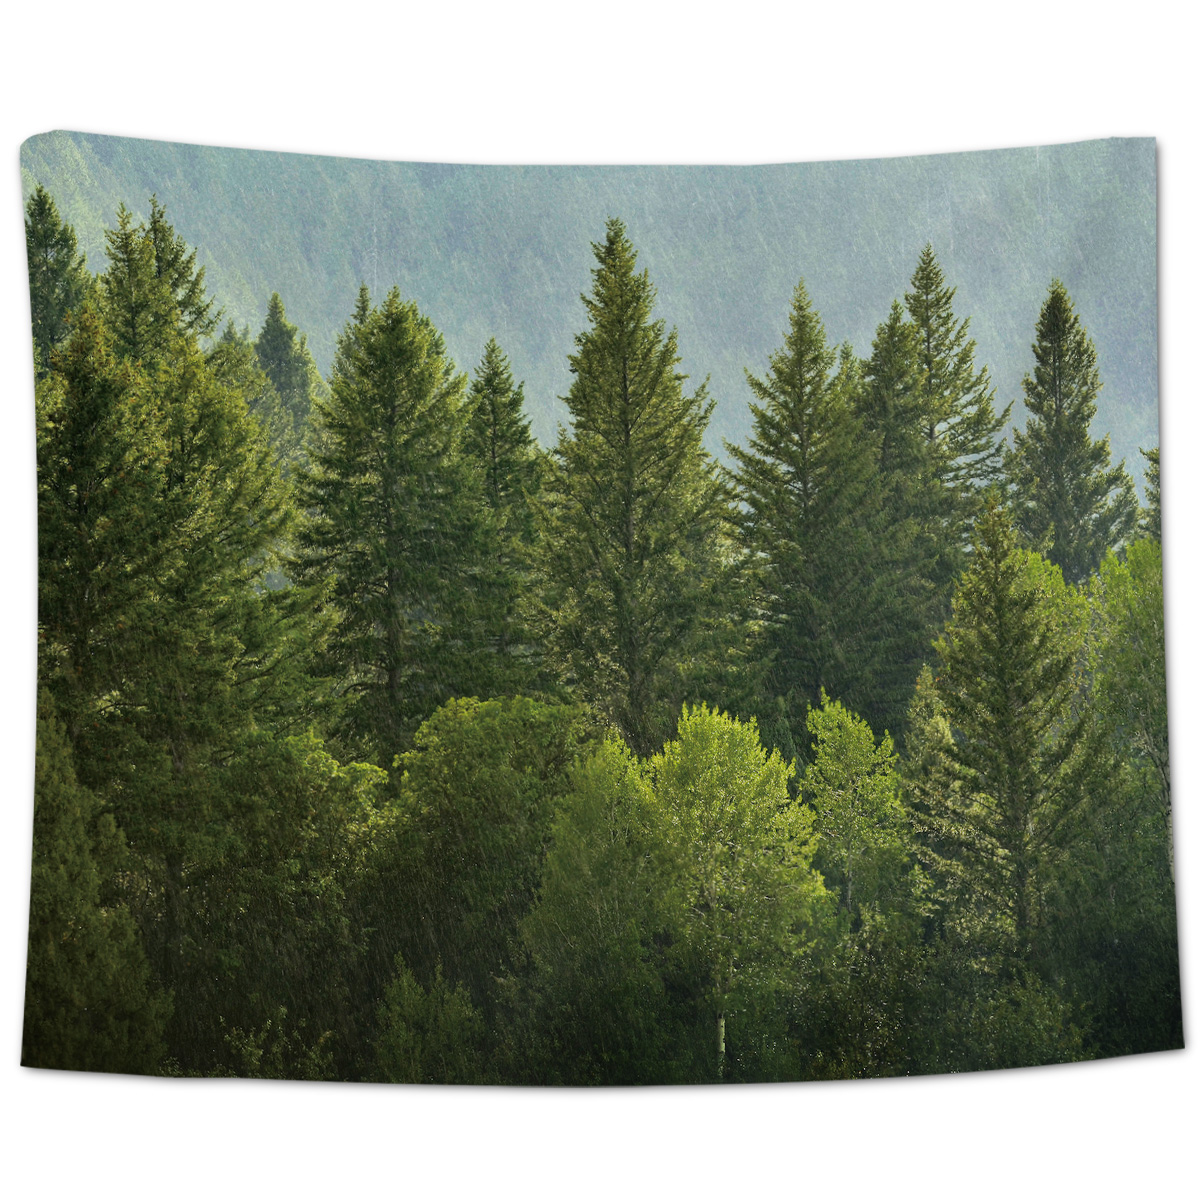 Green Pine Forests And Rain On Hillsides Tapestry Wall Decor Wall Art Home Art For Living Room Decoration